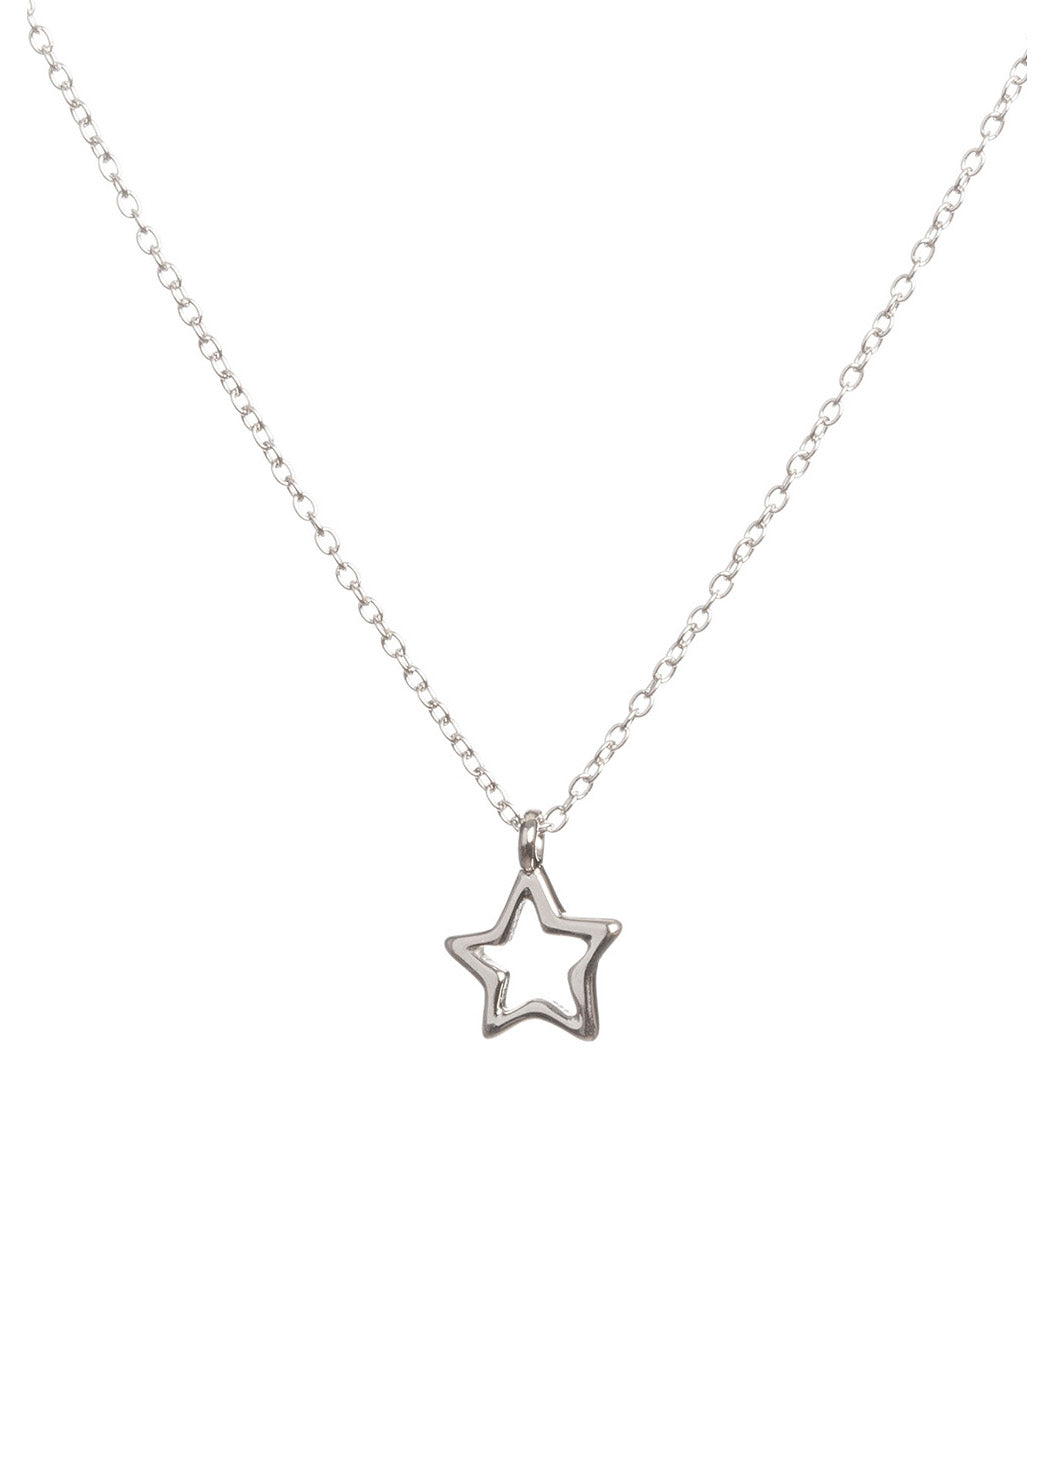 Silver Open Star Necklace